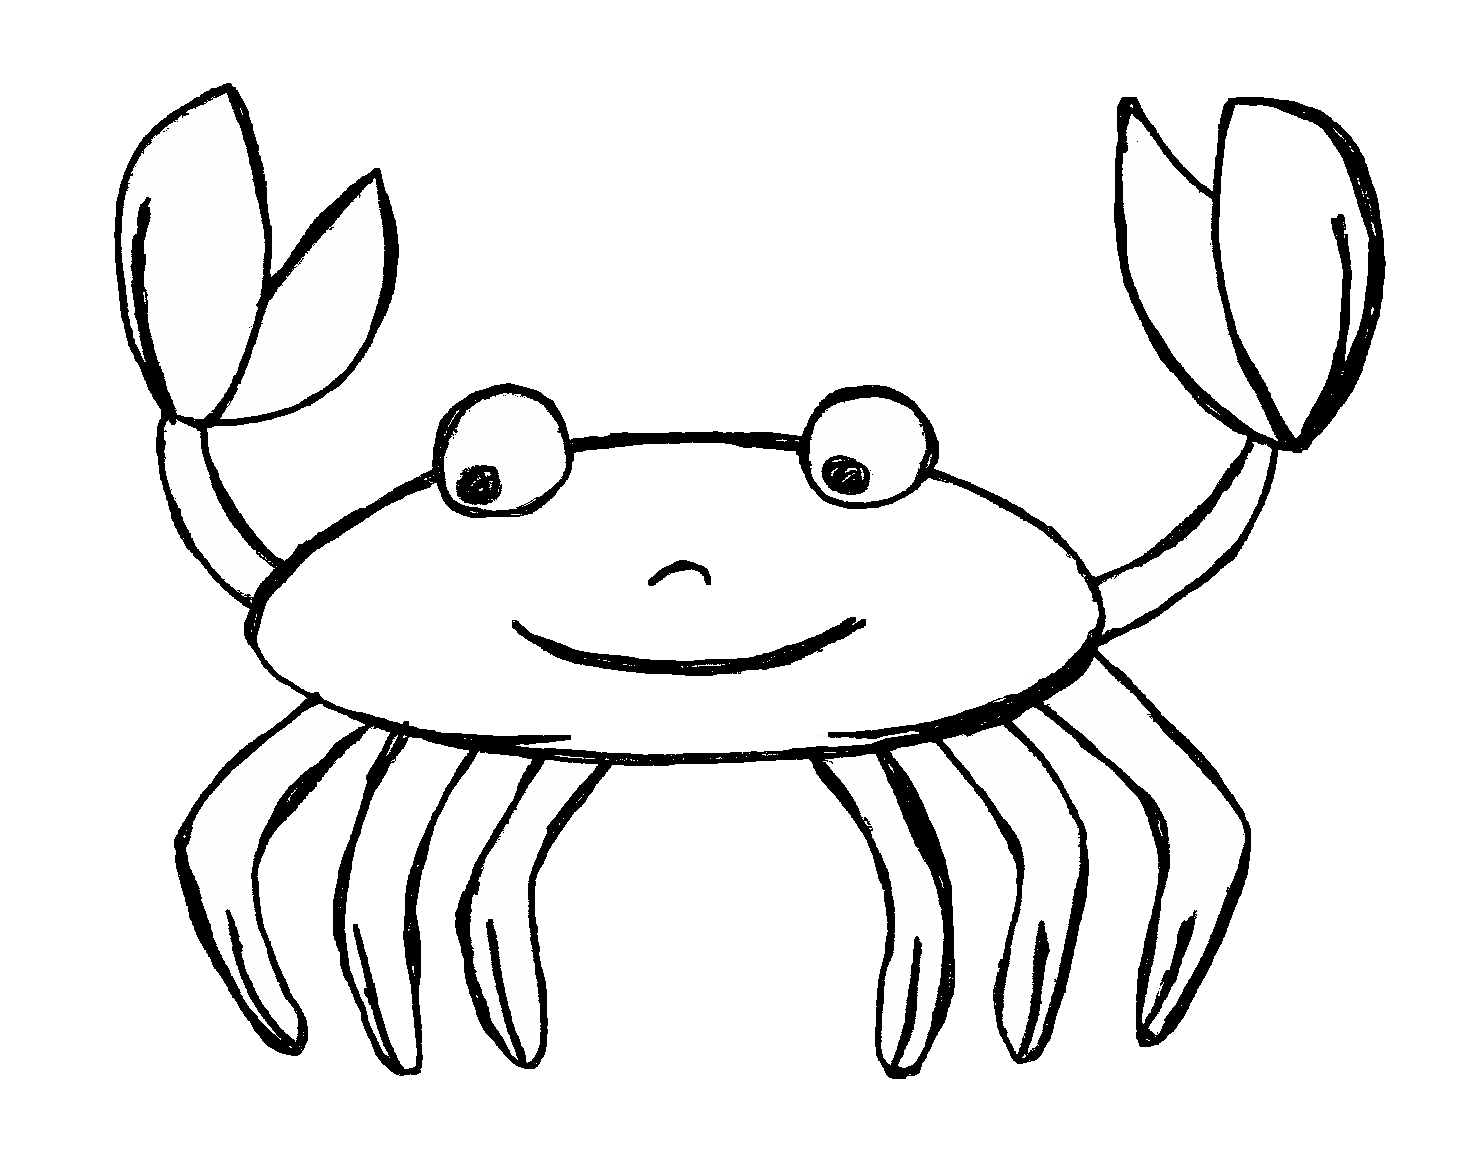 Cute Octopus Png Black And White - Octopus black and white cute octopus clipart black and white ...